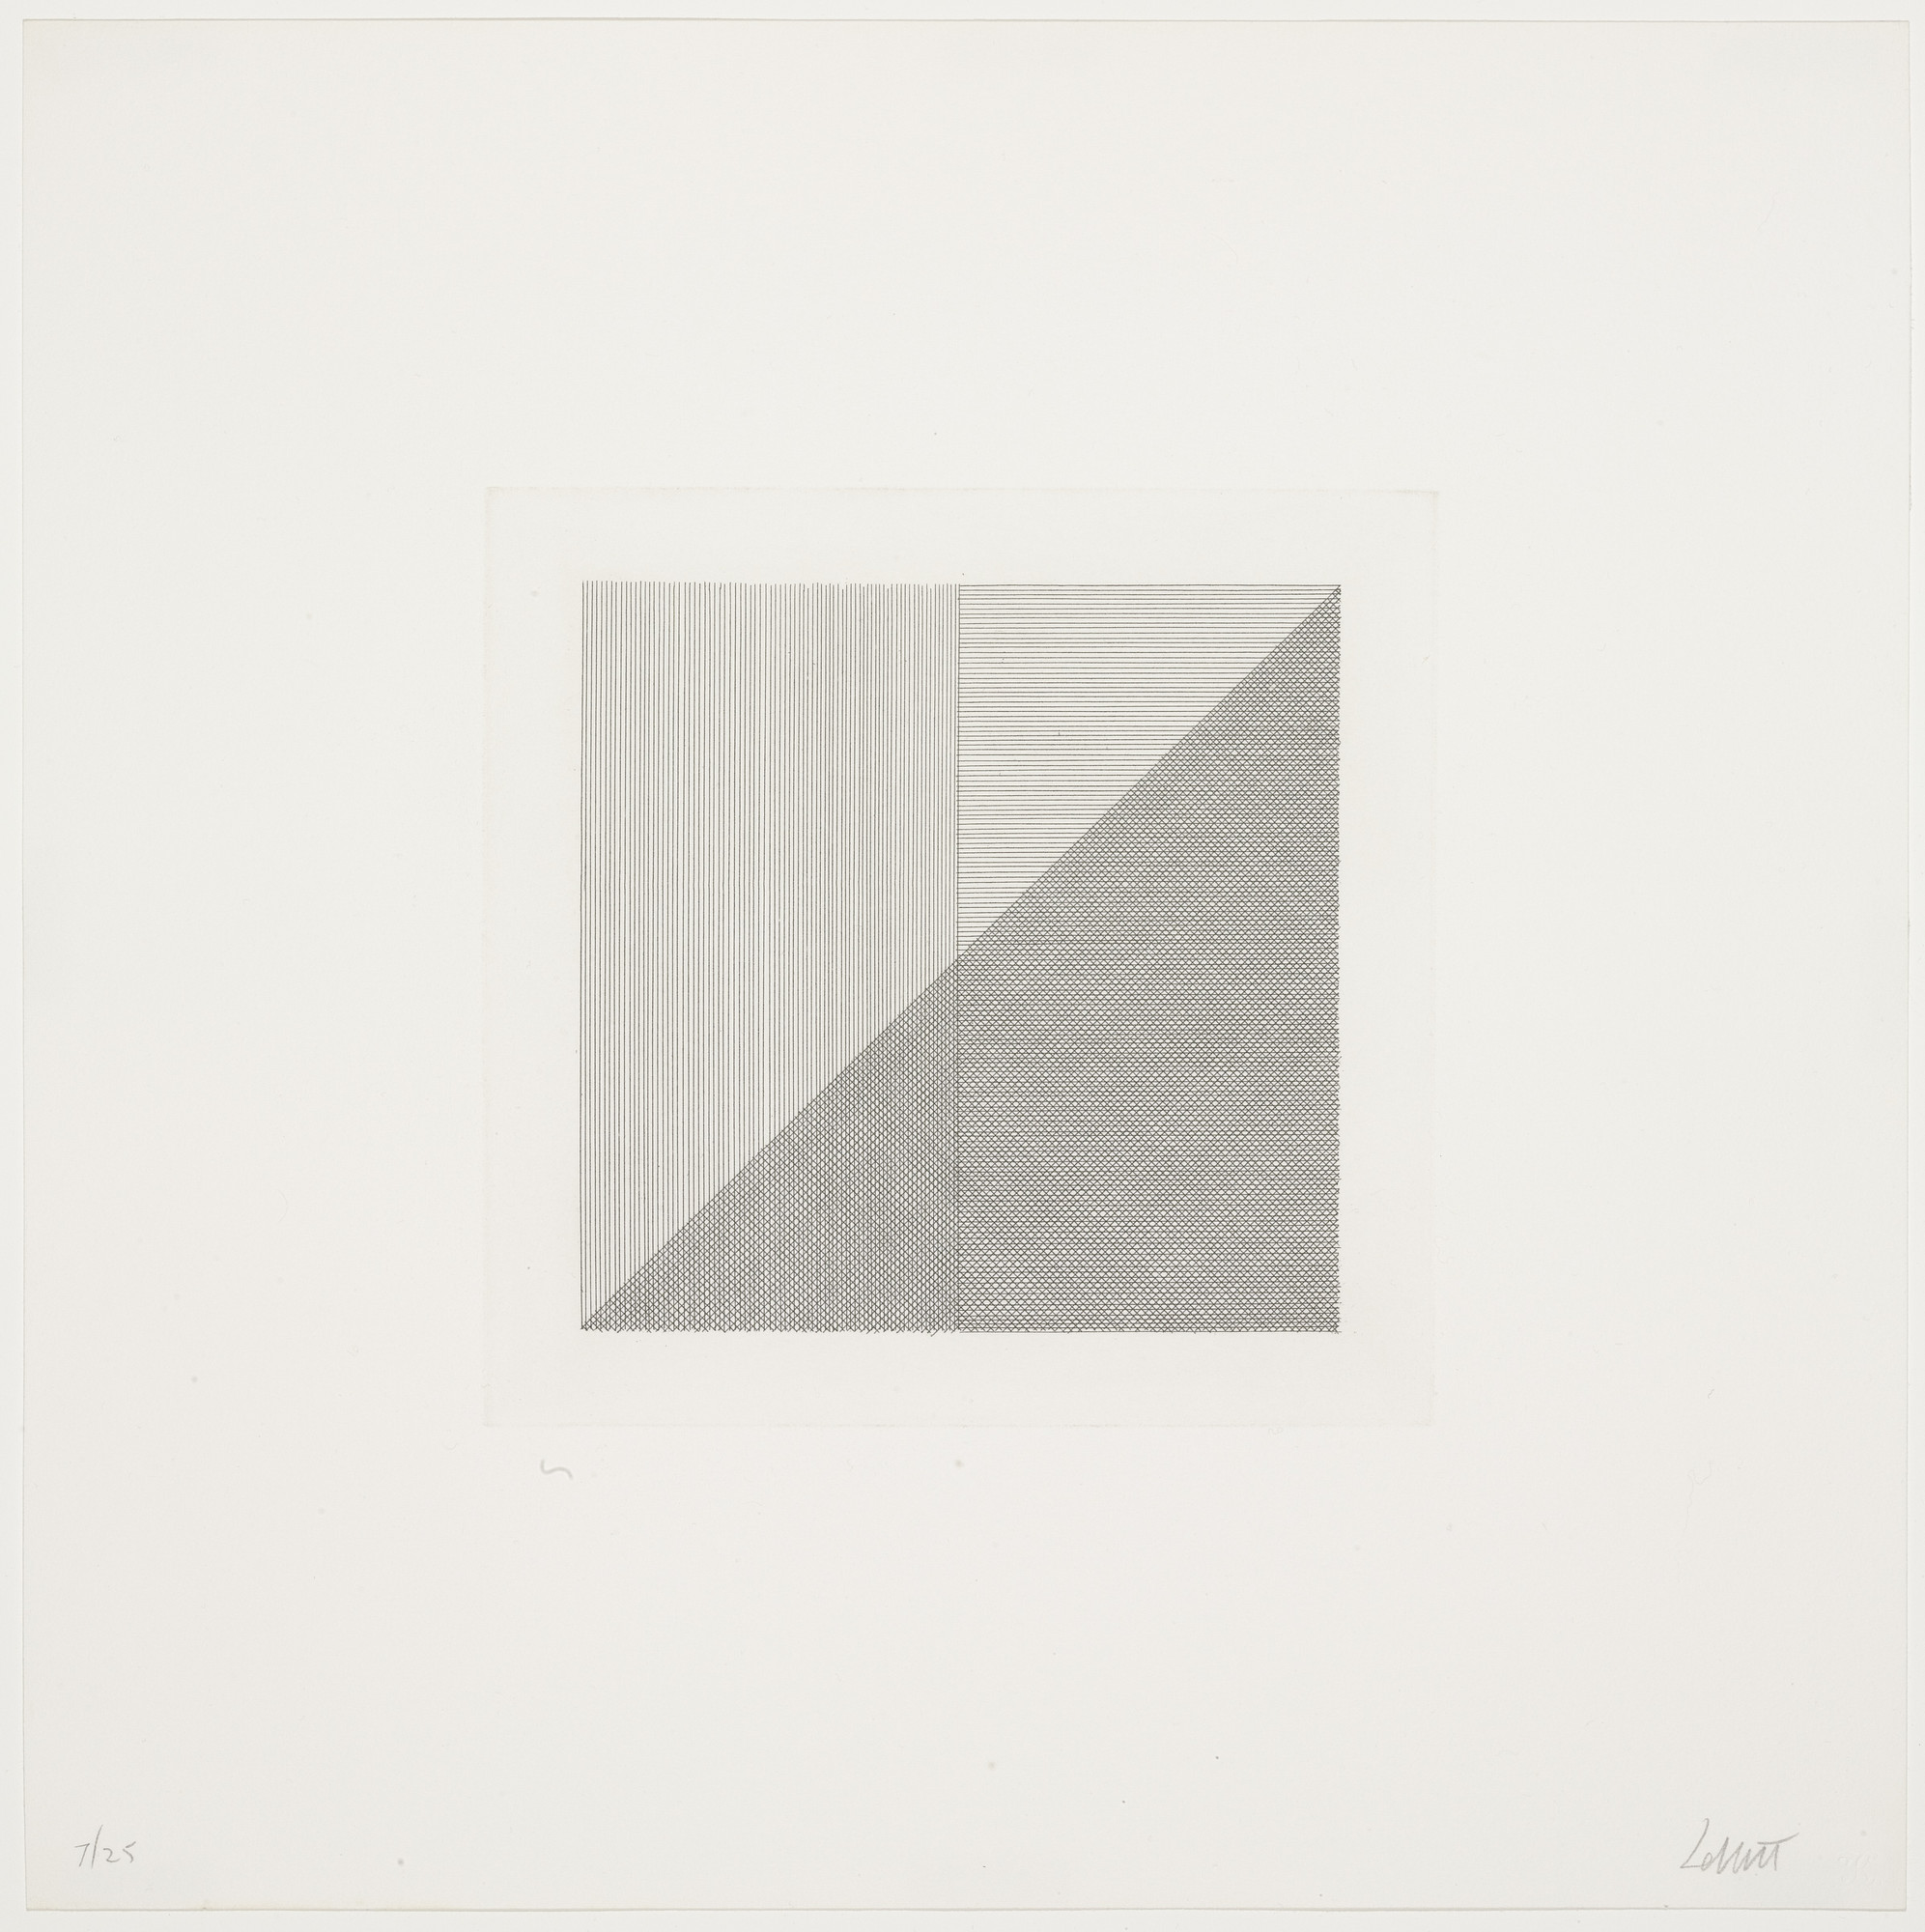 Sol LeWitt. Squares with a Different Line Direction in Each Half Square. 1971